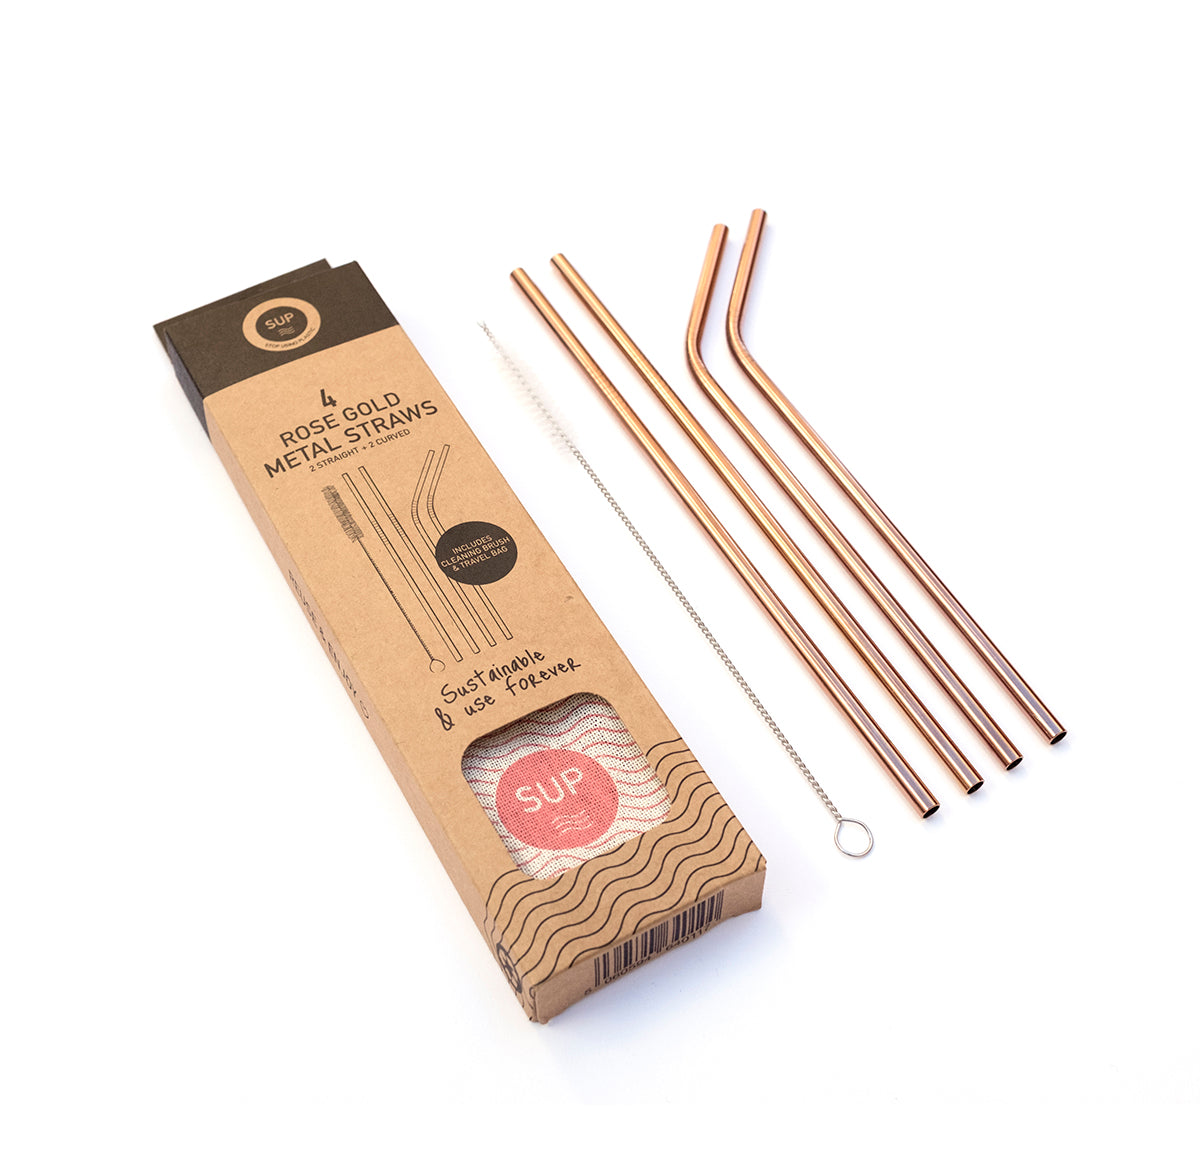 Rose Gold Metal Straws - Pack of 4